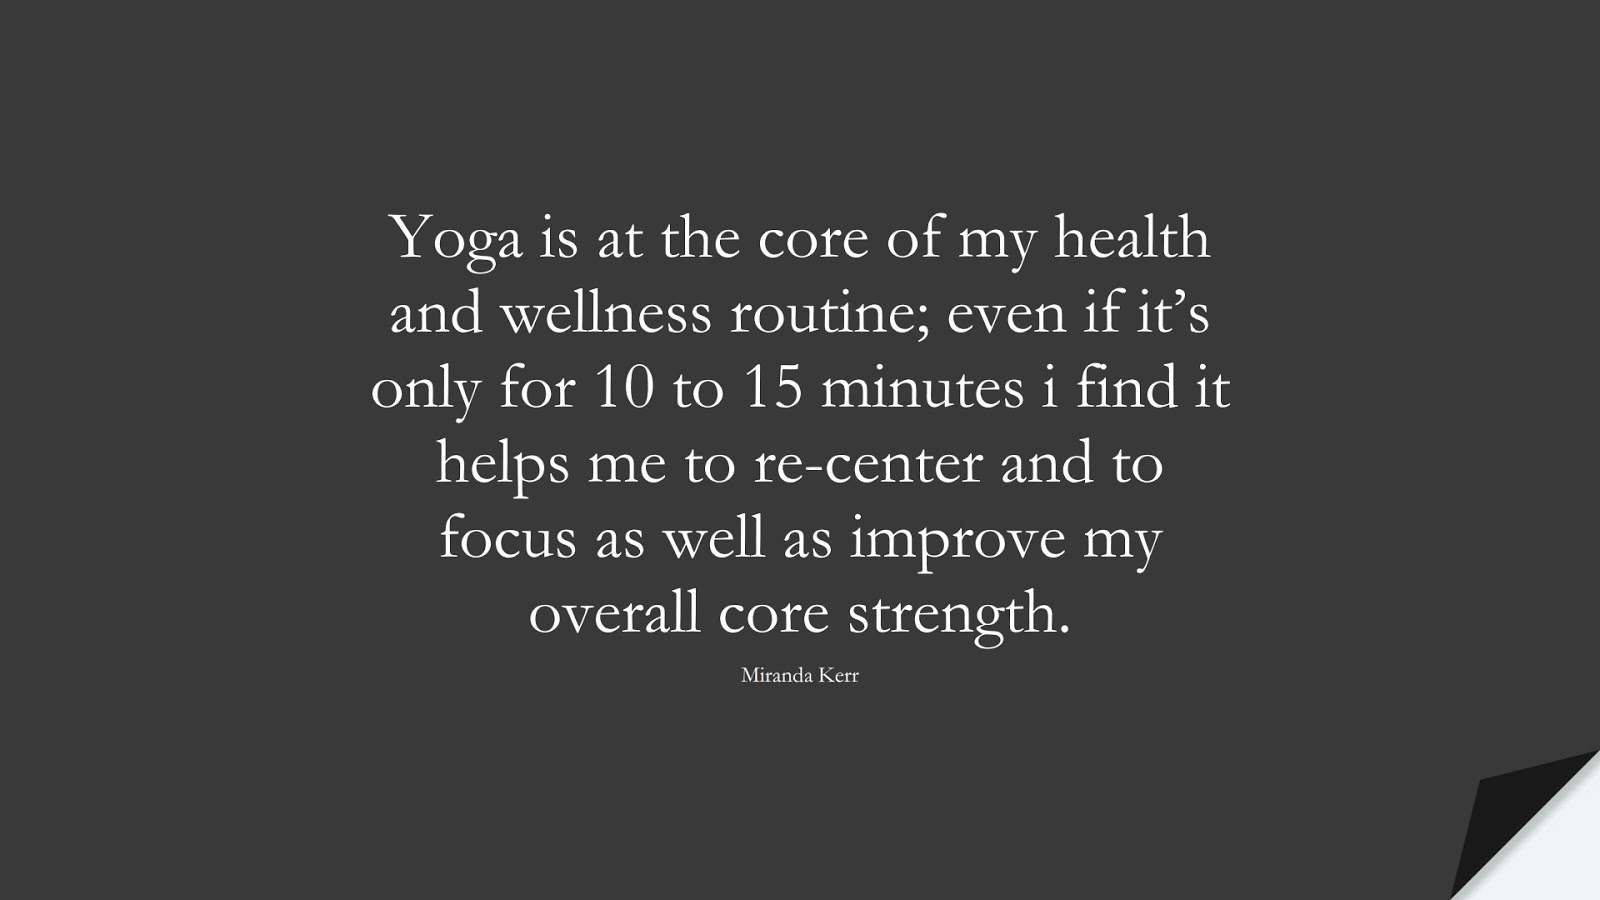 Yoga is at the core of my health and wellness routine; even if it's only for 10 to 15 minutes i find it helps me to re-center and to focus as well as improve my overall core strength. (Miranda Kerr);  #HealthQuotes